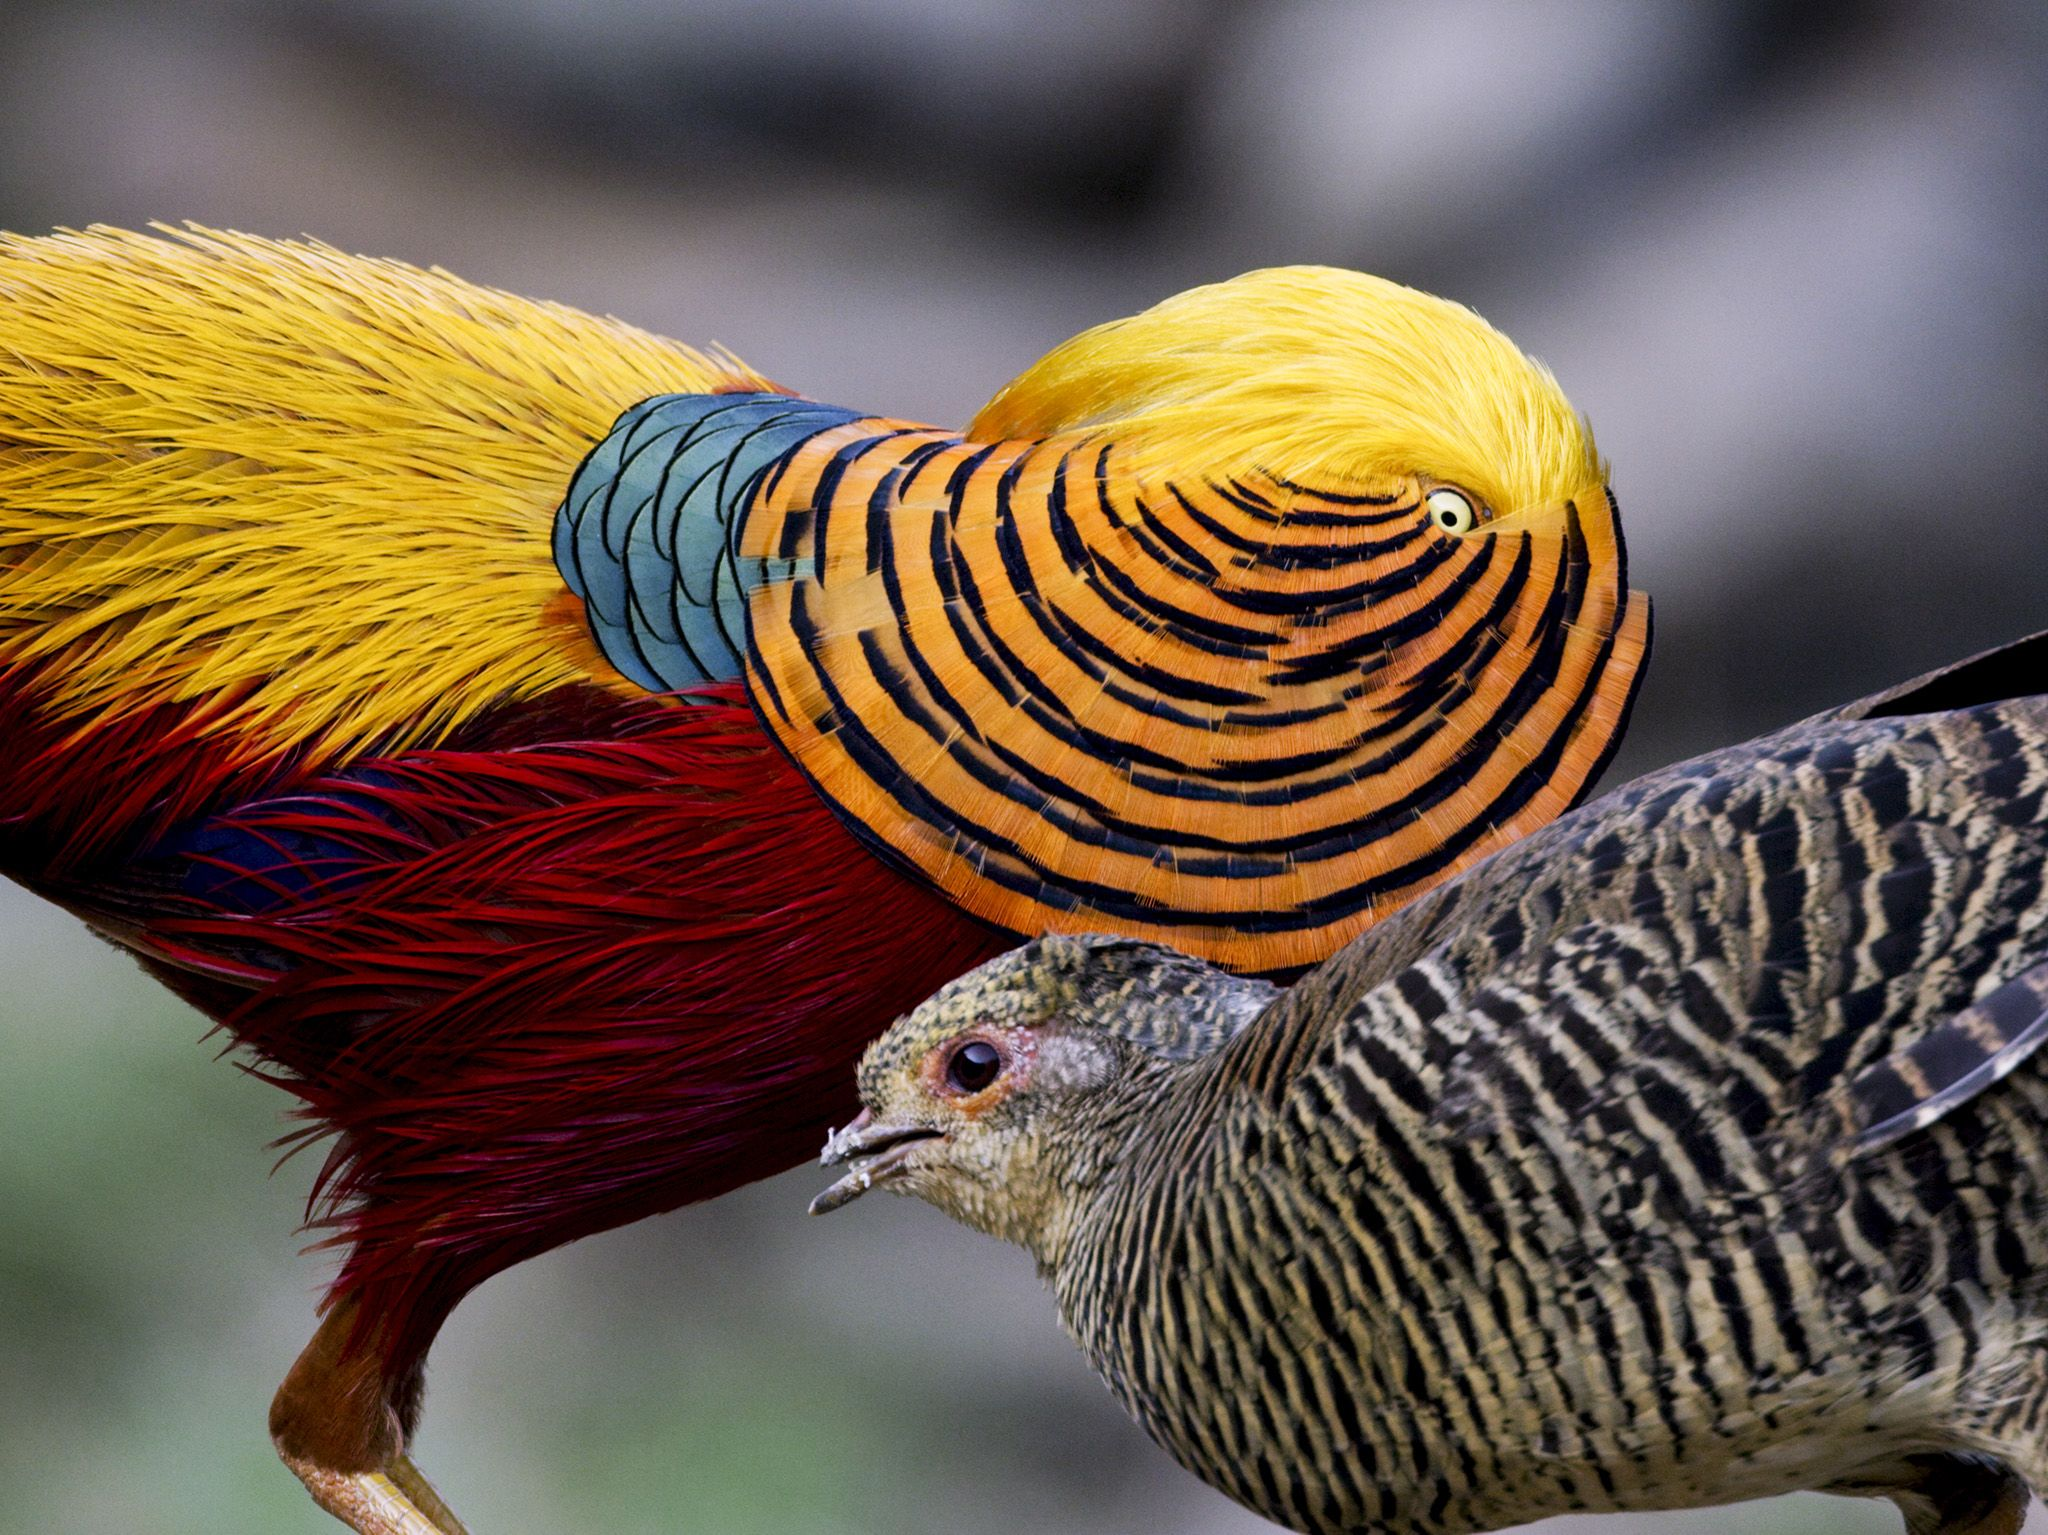 Yangxian County, Shaanxi Province, China: Male and female Golden Pheasants. Male showing feather... [Foto del giorno - October 2019]